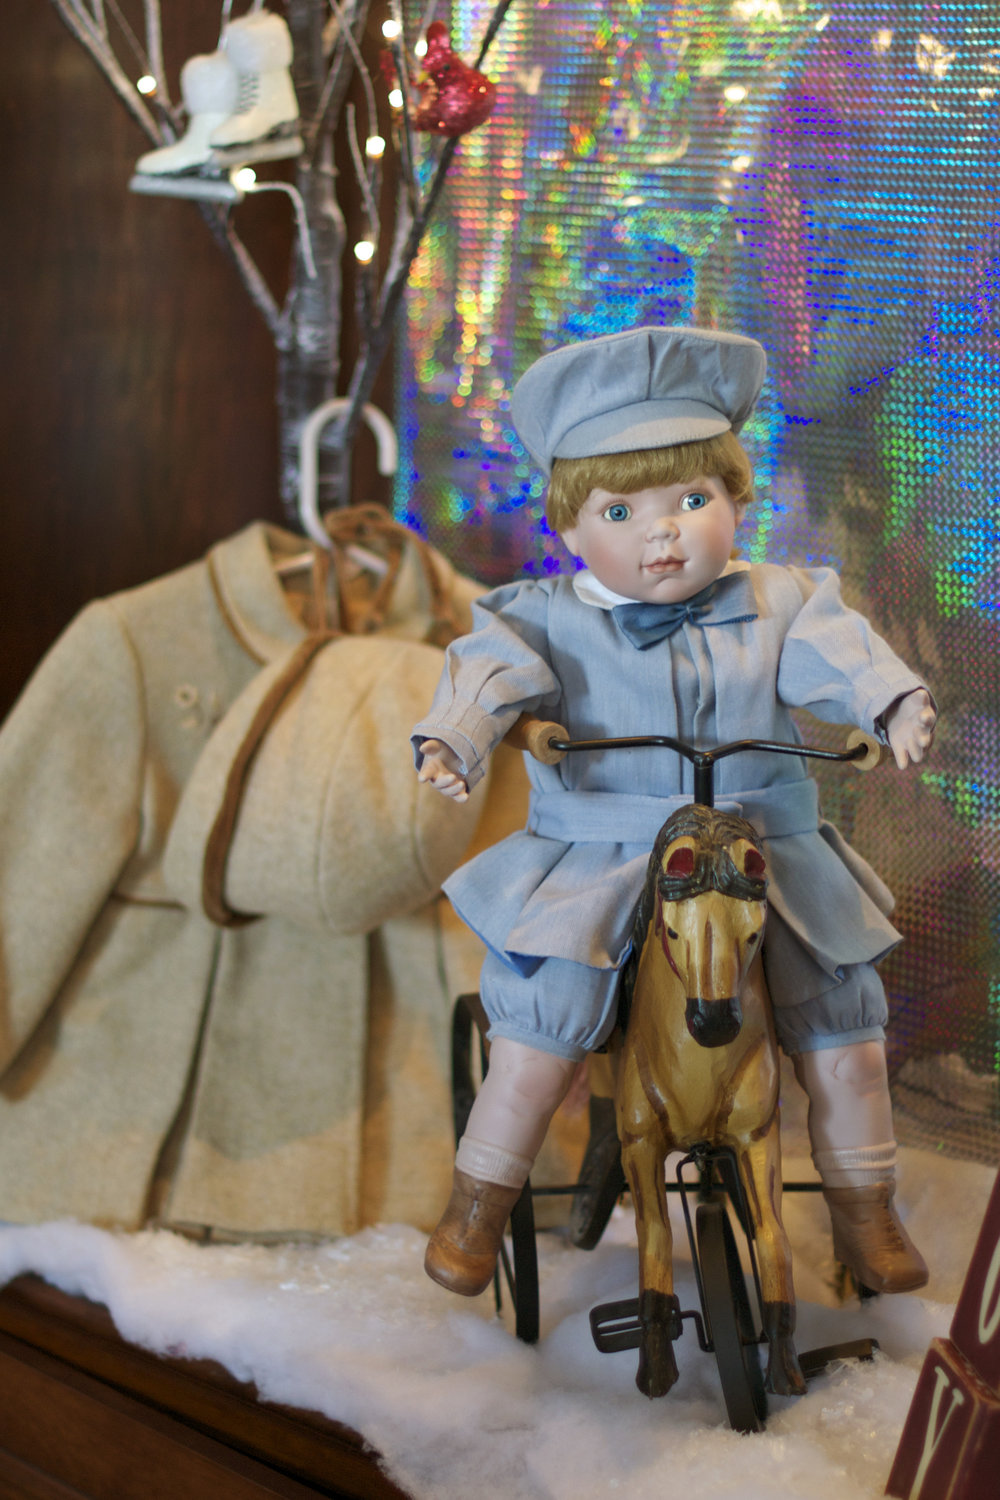 olden-blue-boy-on-horse-tricycle.jpg